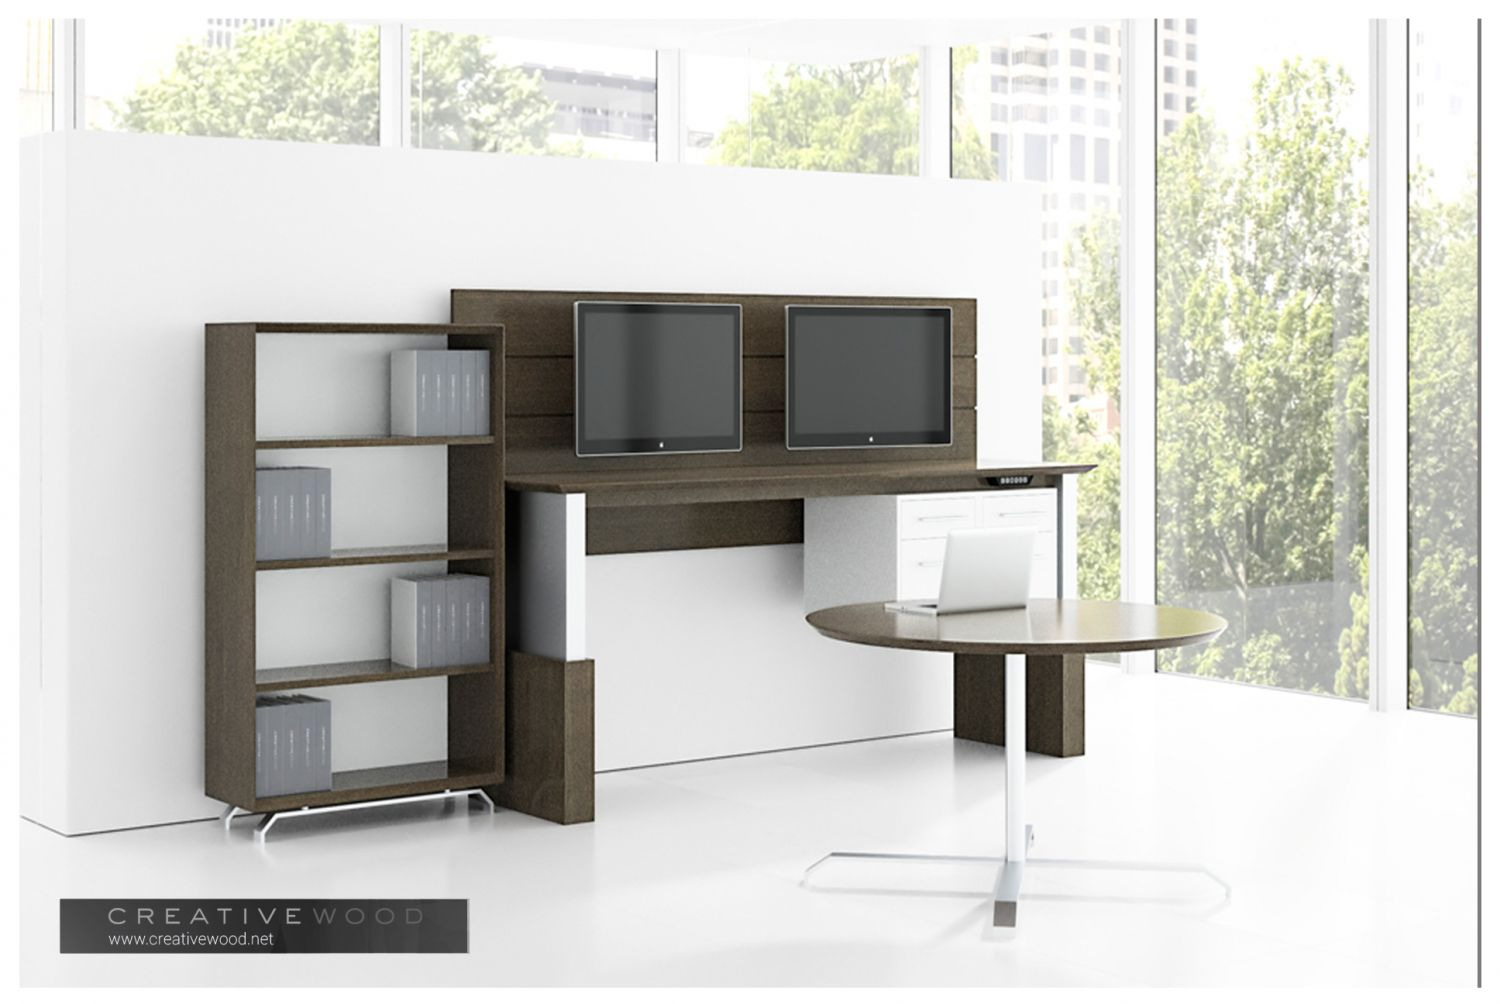 Rendering of office casegoods from Creative Wood's 3x9 furniture collection